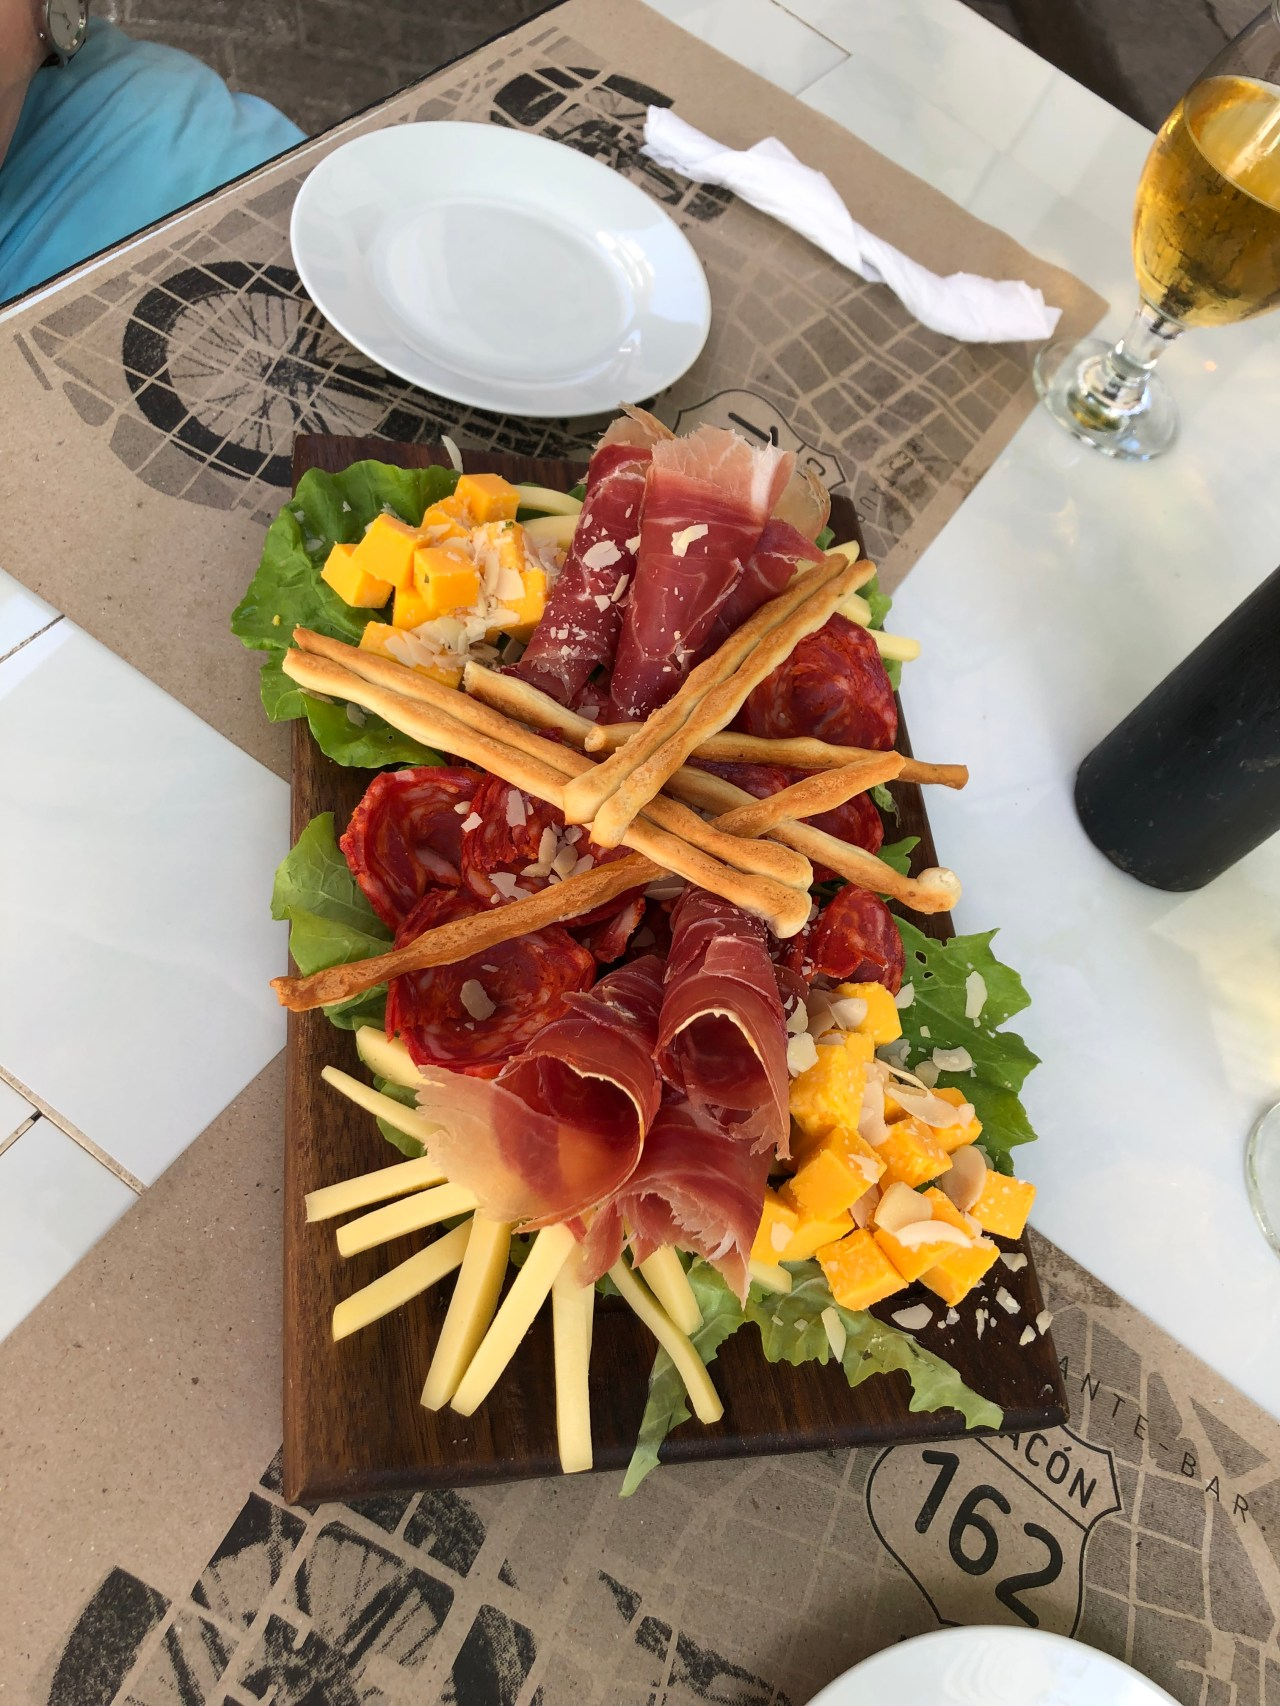 Cheese and Meats platter Chacon 162 Havana